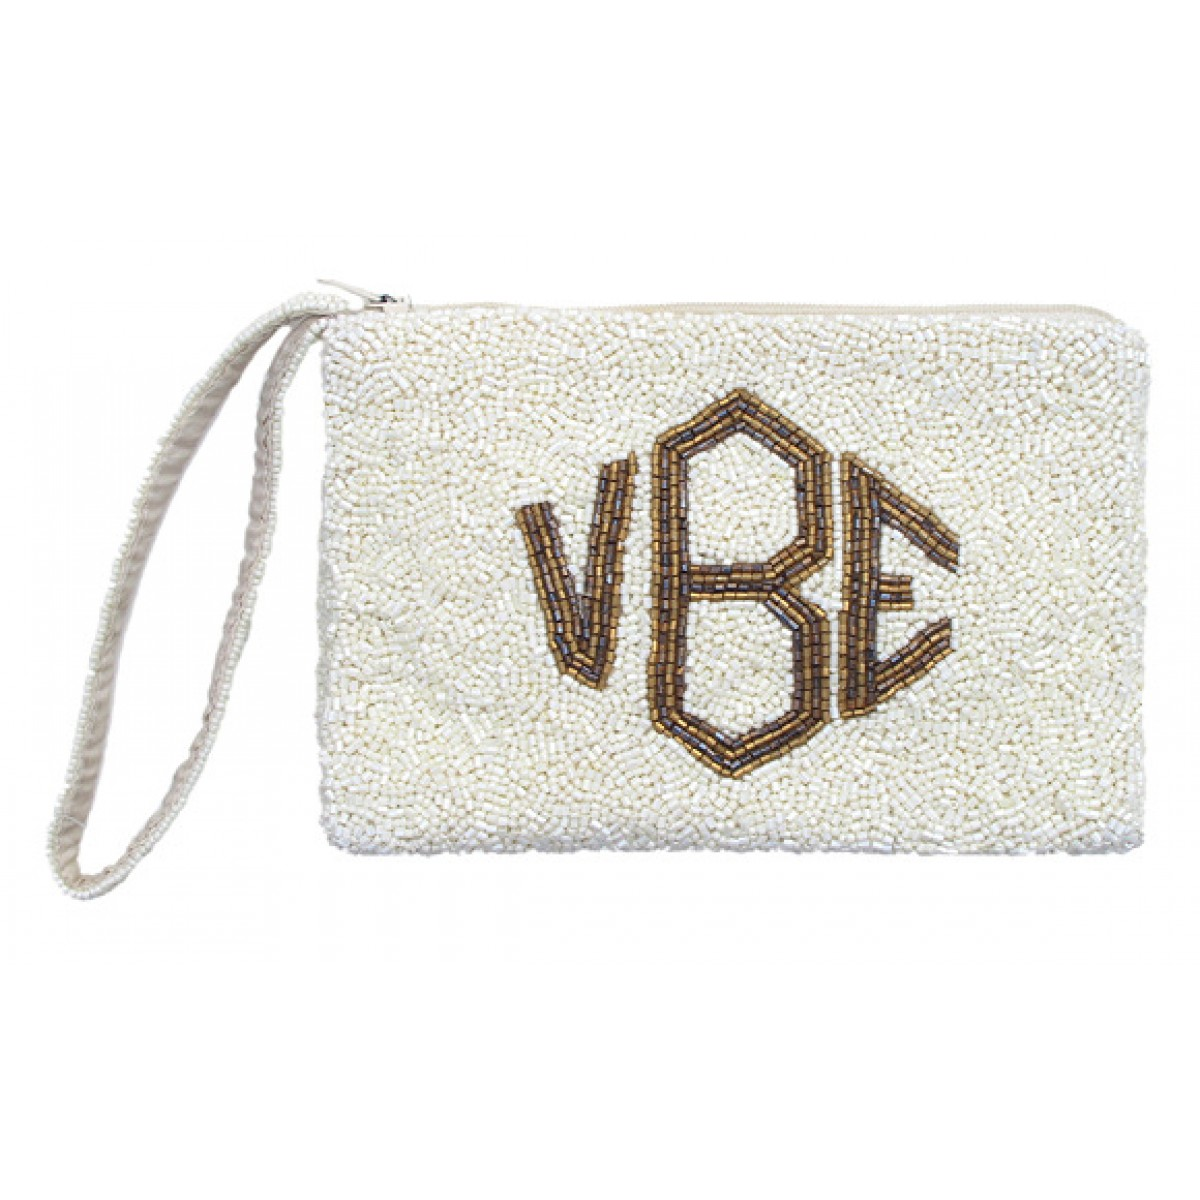 Wrist Cosmetic Pouch with Gusset with Diamond Monogram